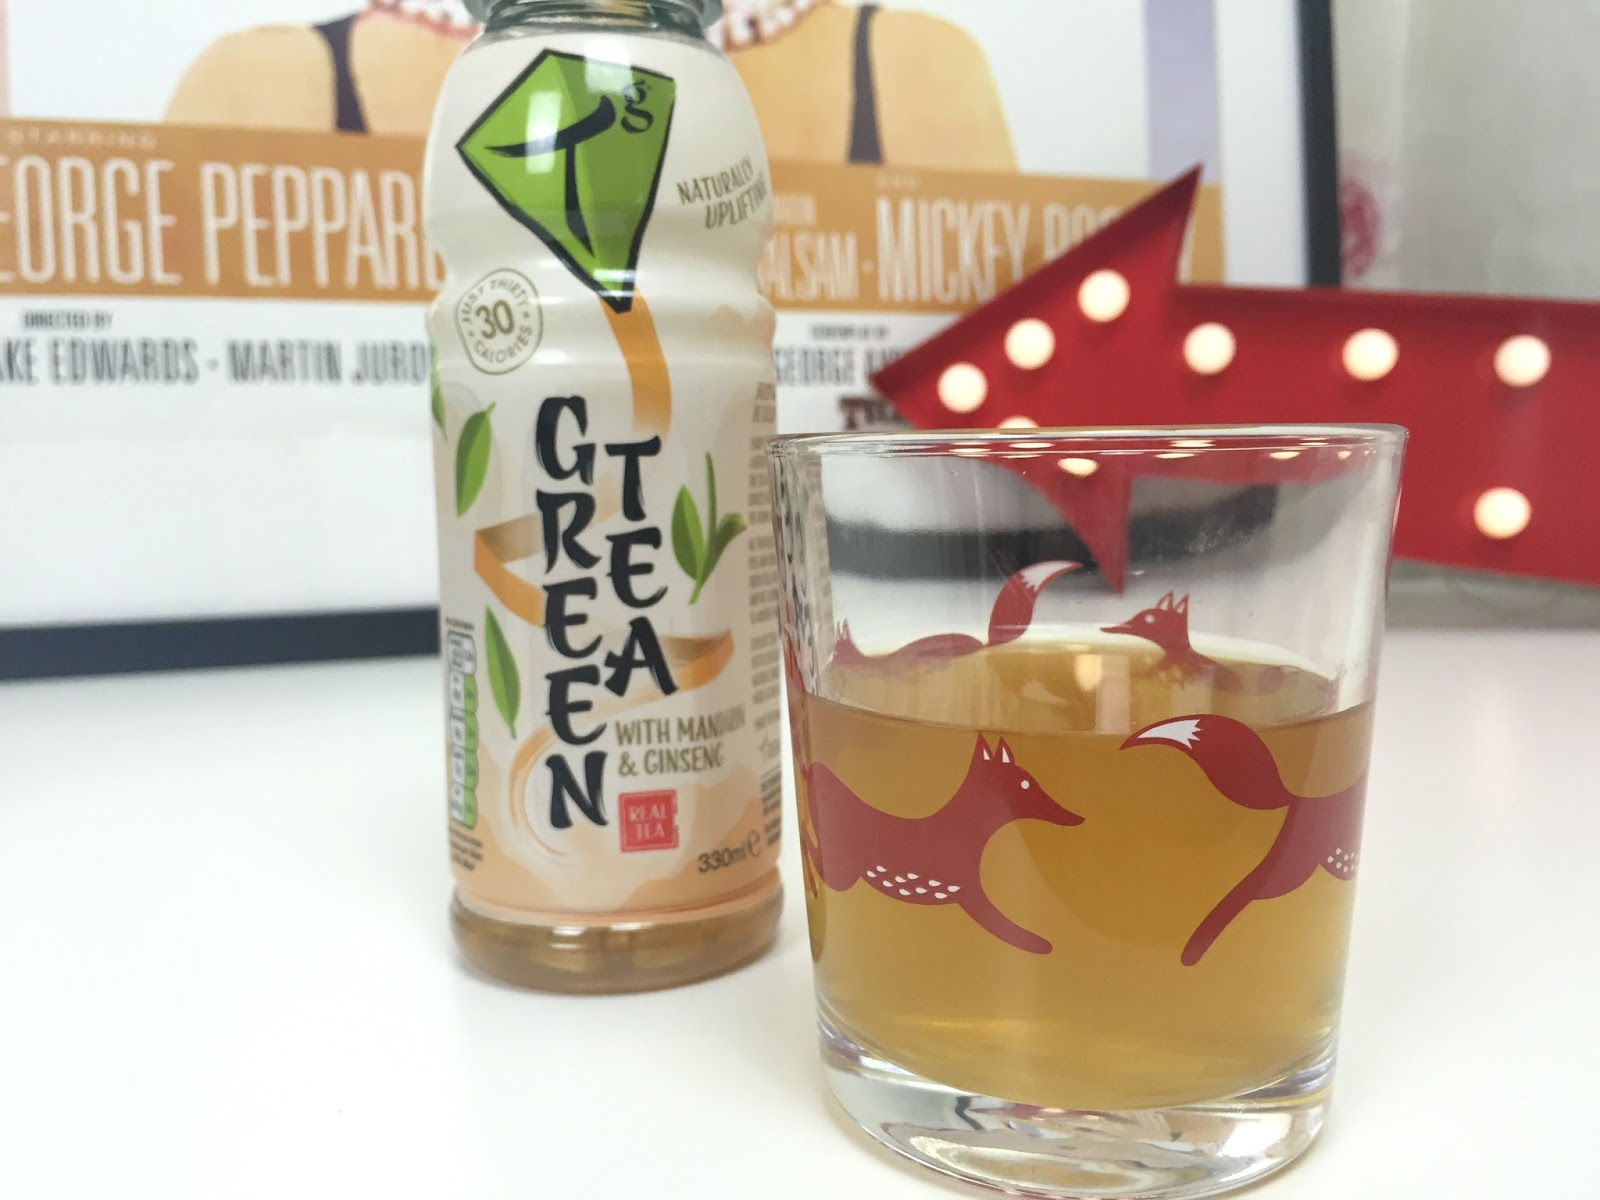 Iced Tg Green Tea - Mandarin and Ginseng